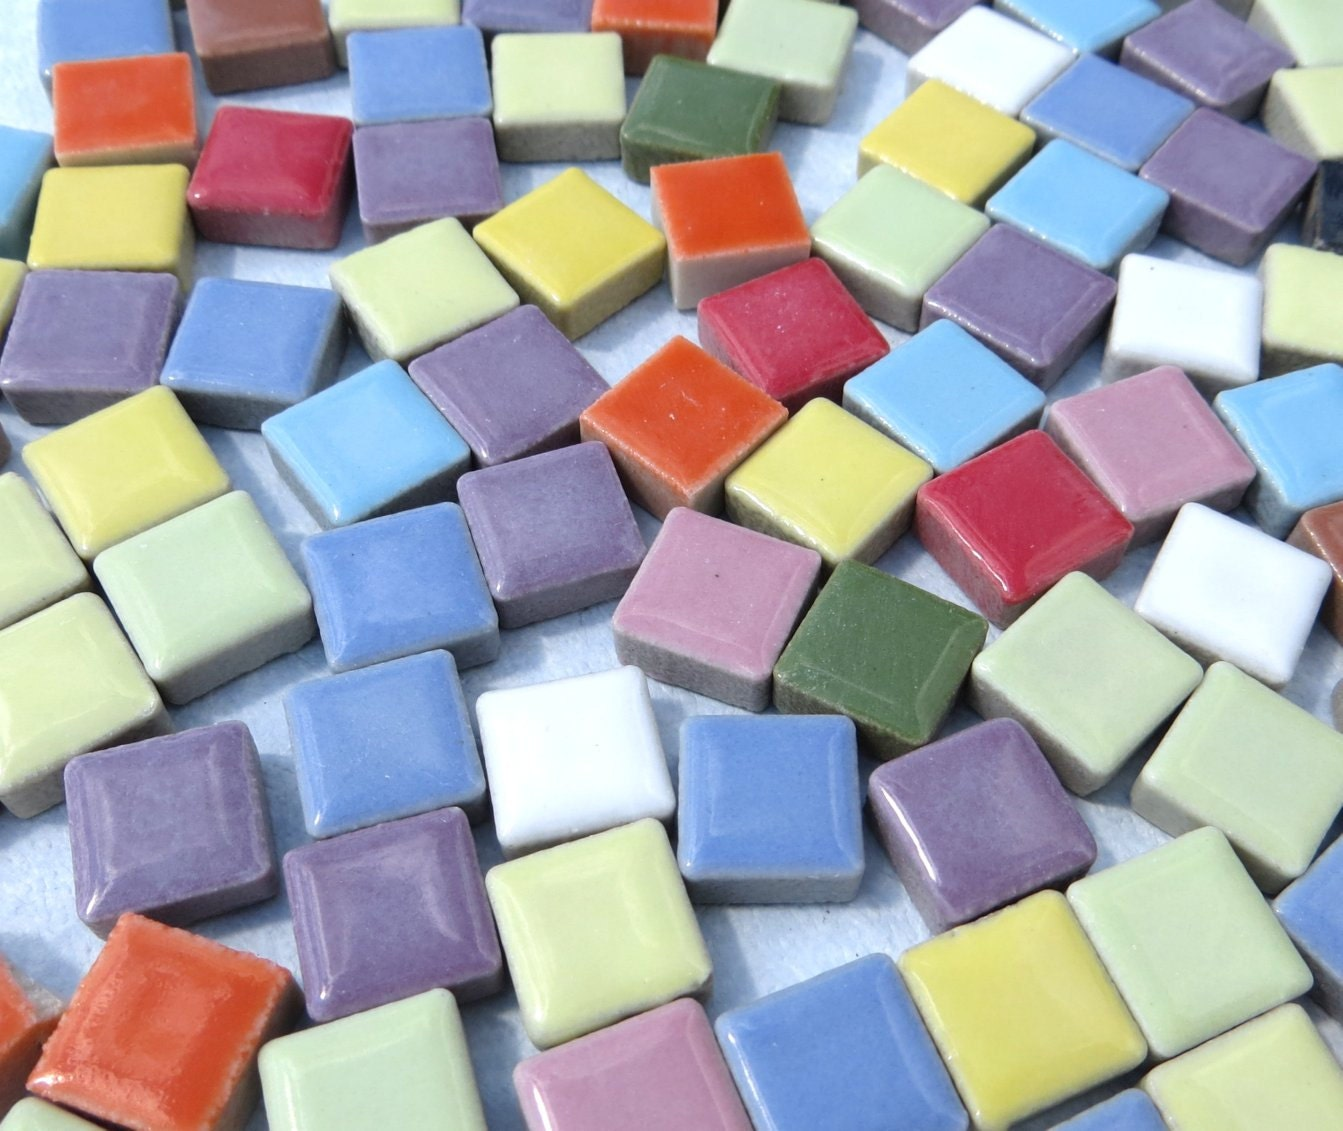 Tiny Square Mosaic Tiles In Assorted Colors 38 Inch Ceramic 1 Pound